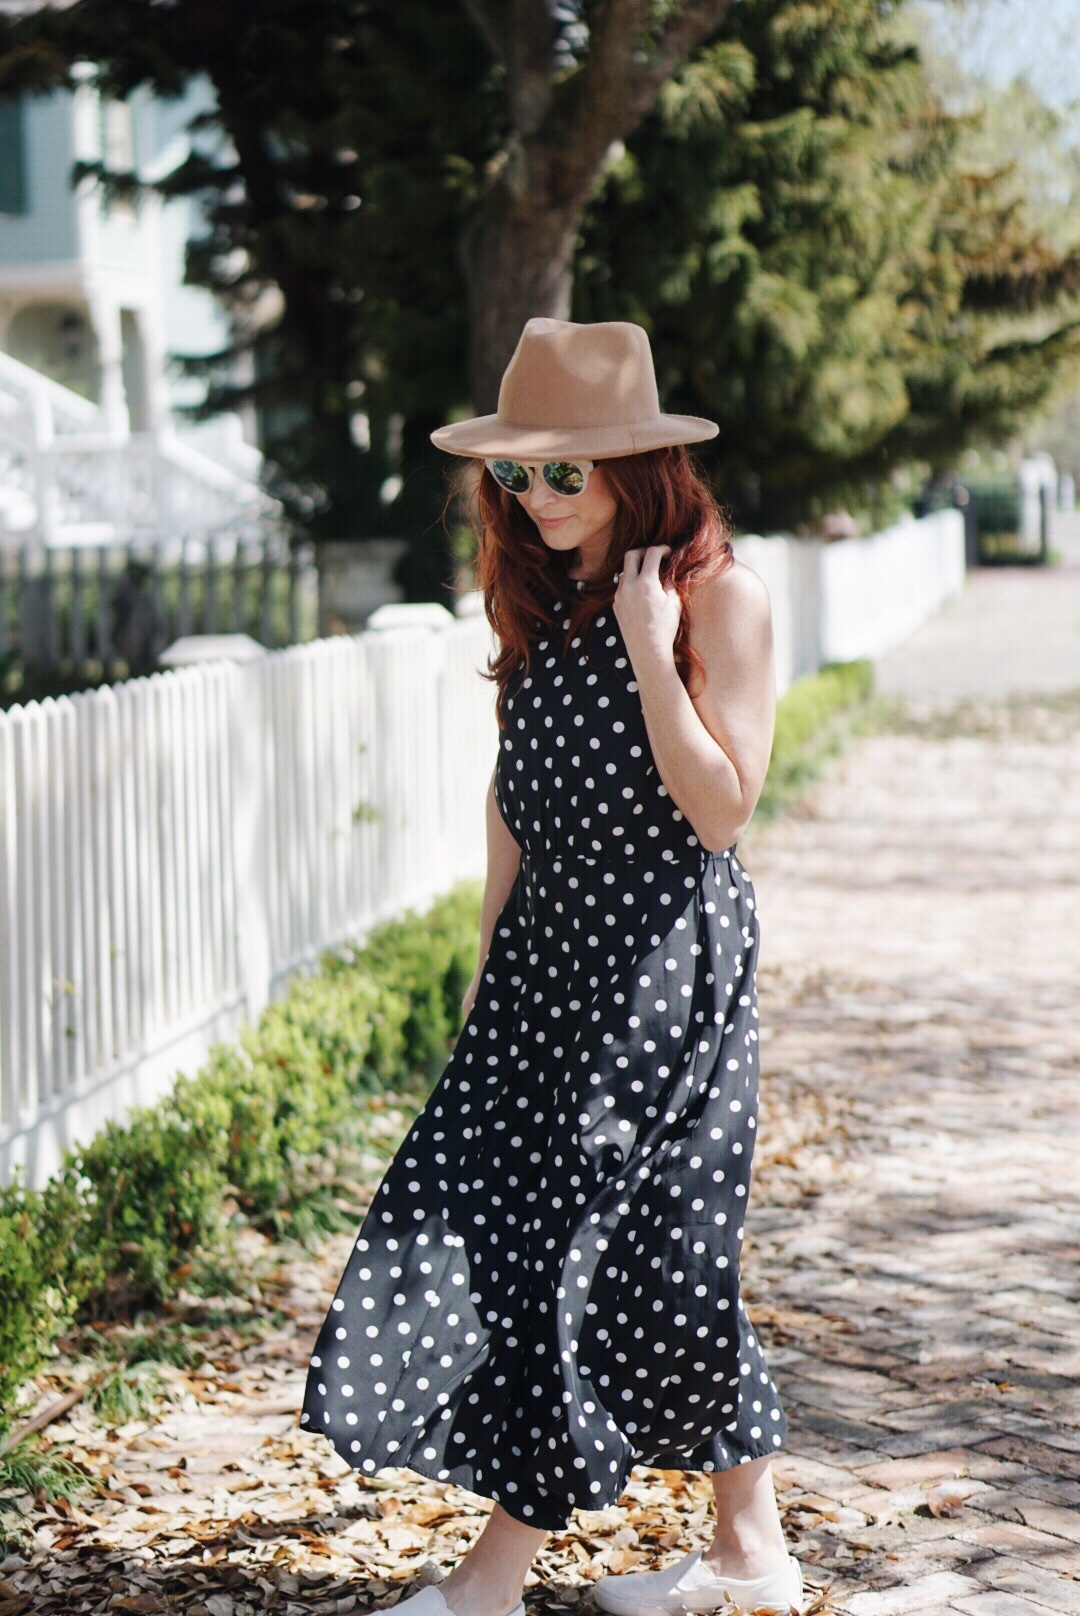 brown hat, black and white polka dots, white picket fence, galveston, tx, sneakers